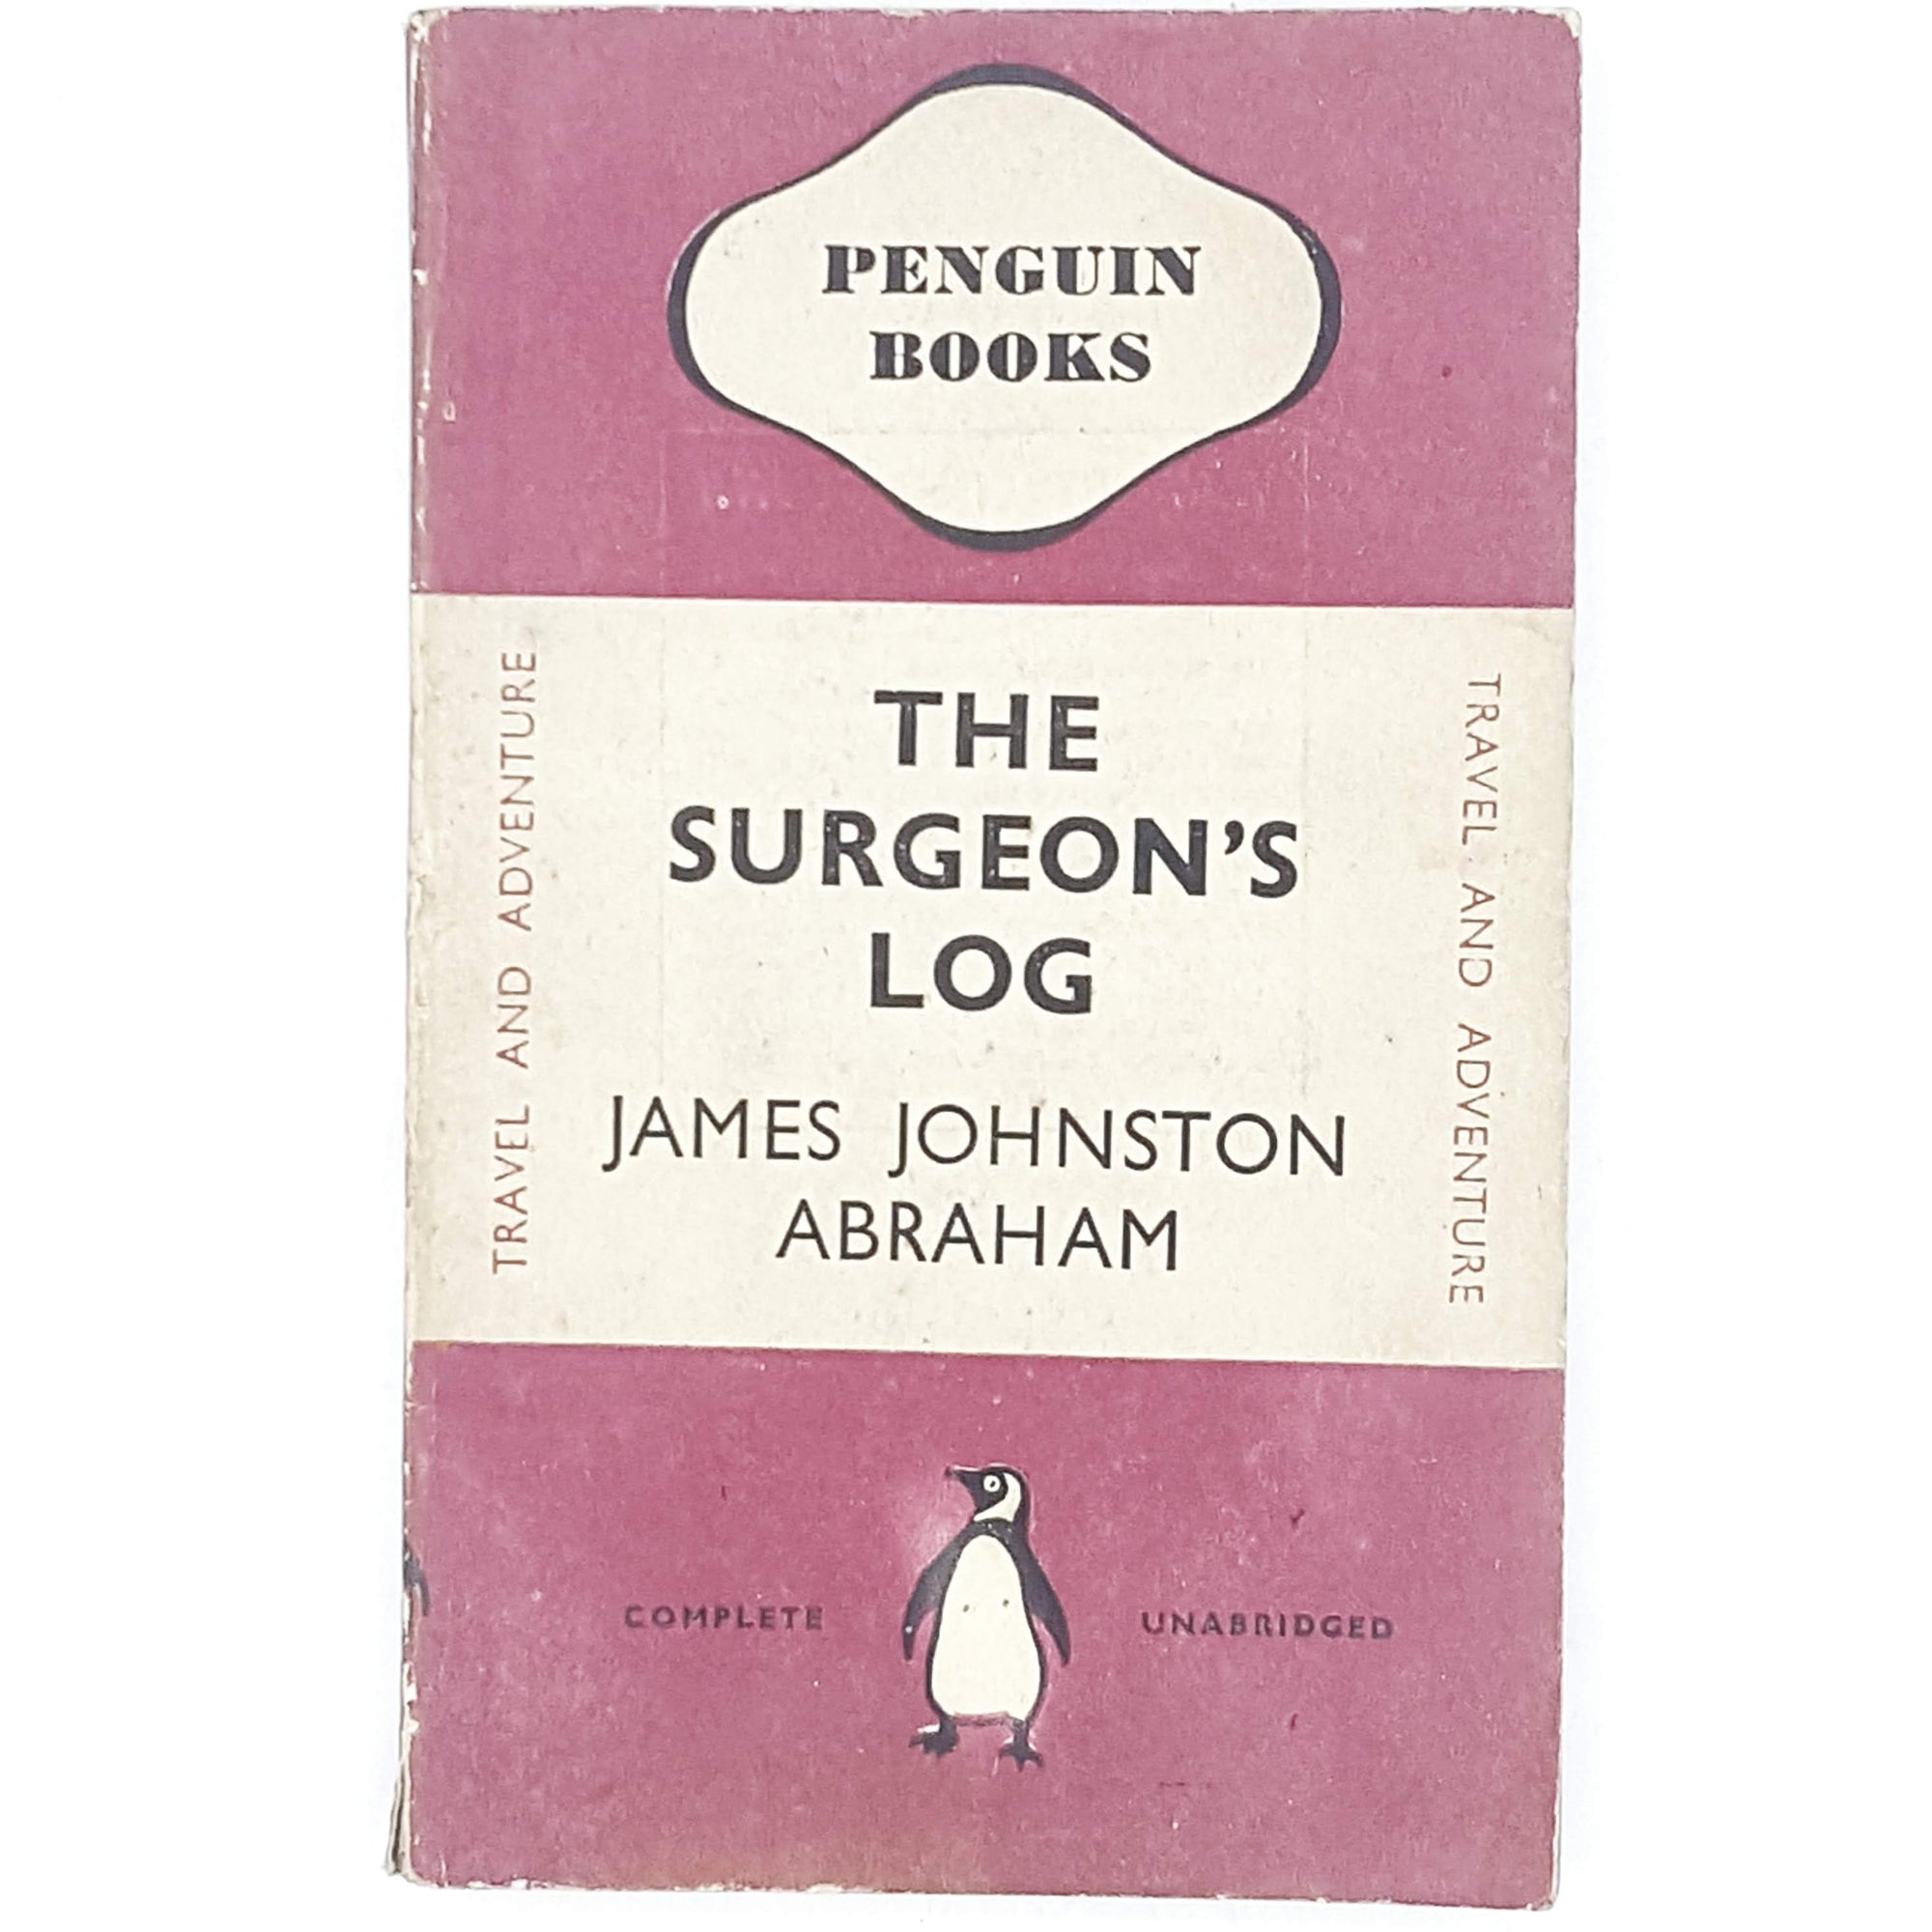 The Surgeon's Log by James Johnston Abraham 1941